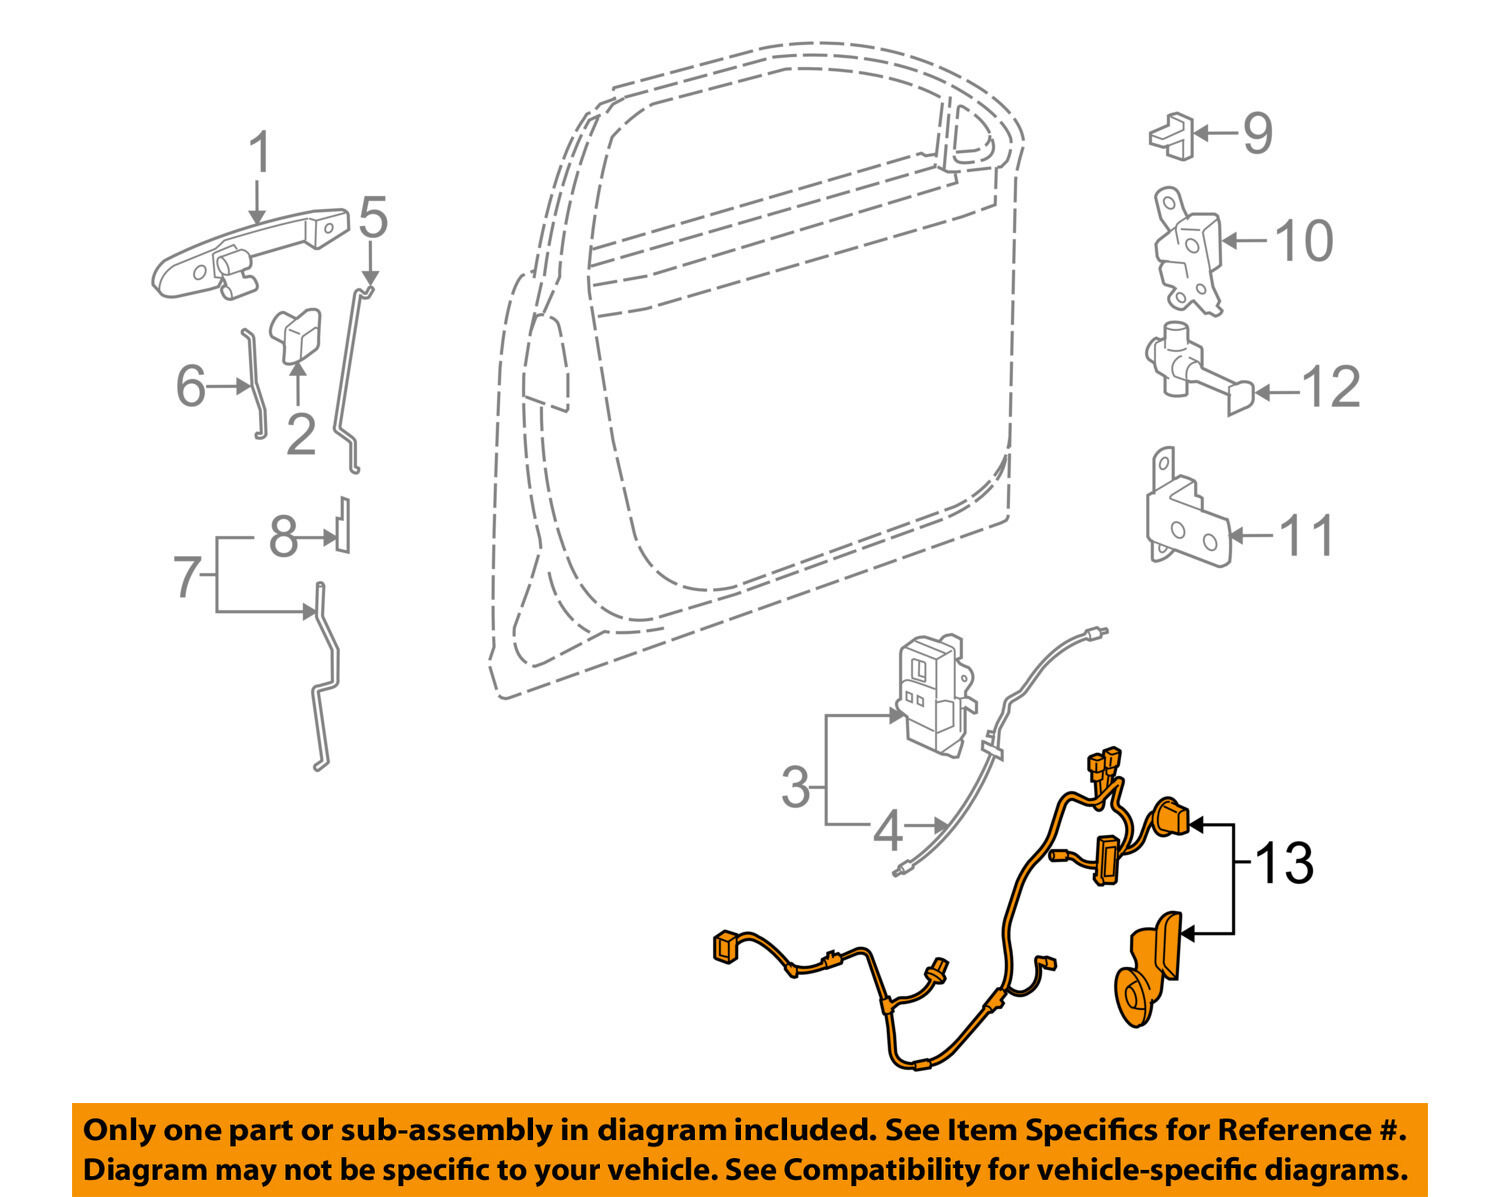 Buick Gm Oem 08 10 Lucerne Front Door Wire Harness Left 20815385 Ebay Factory Wiring Diagram Picture 1 Of 2